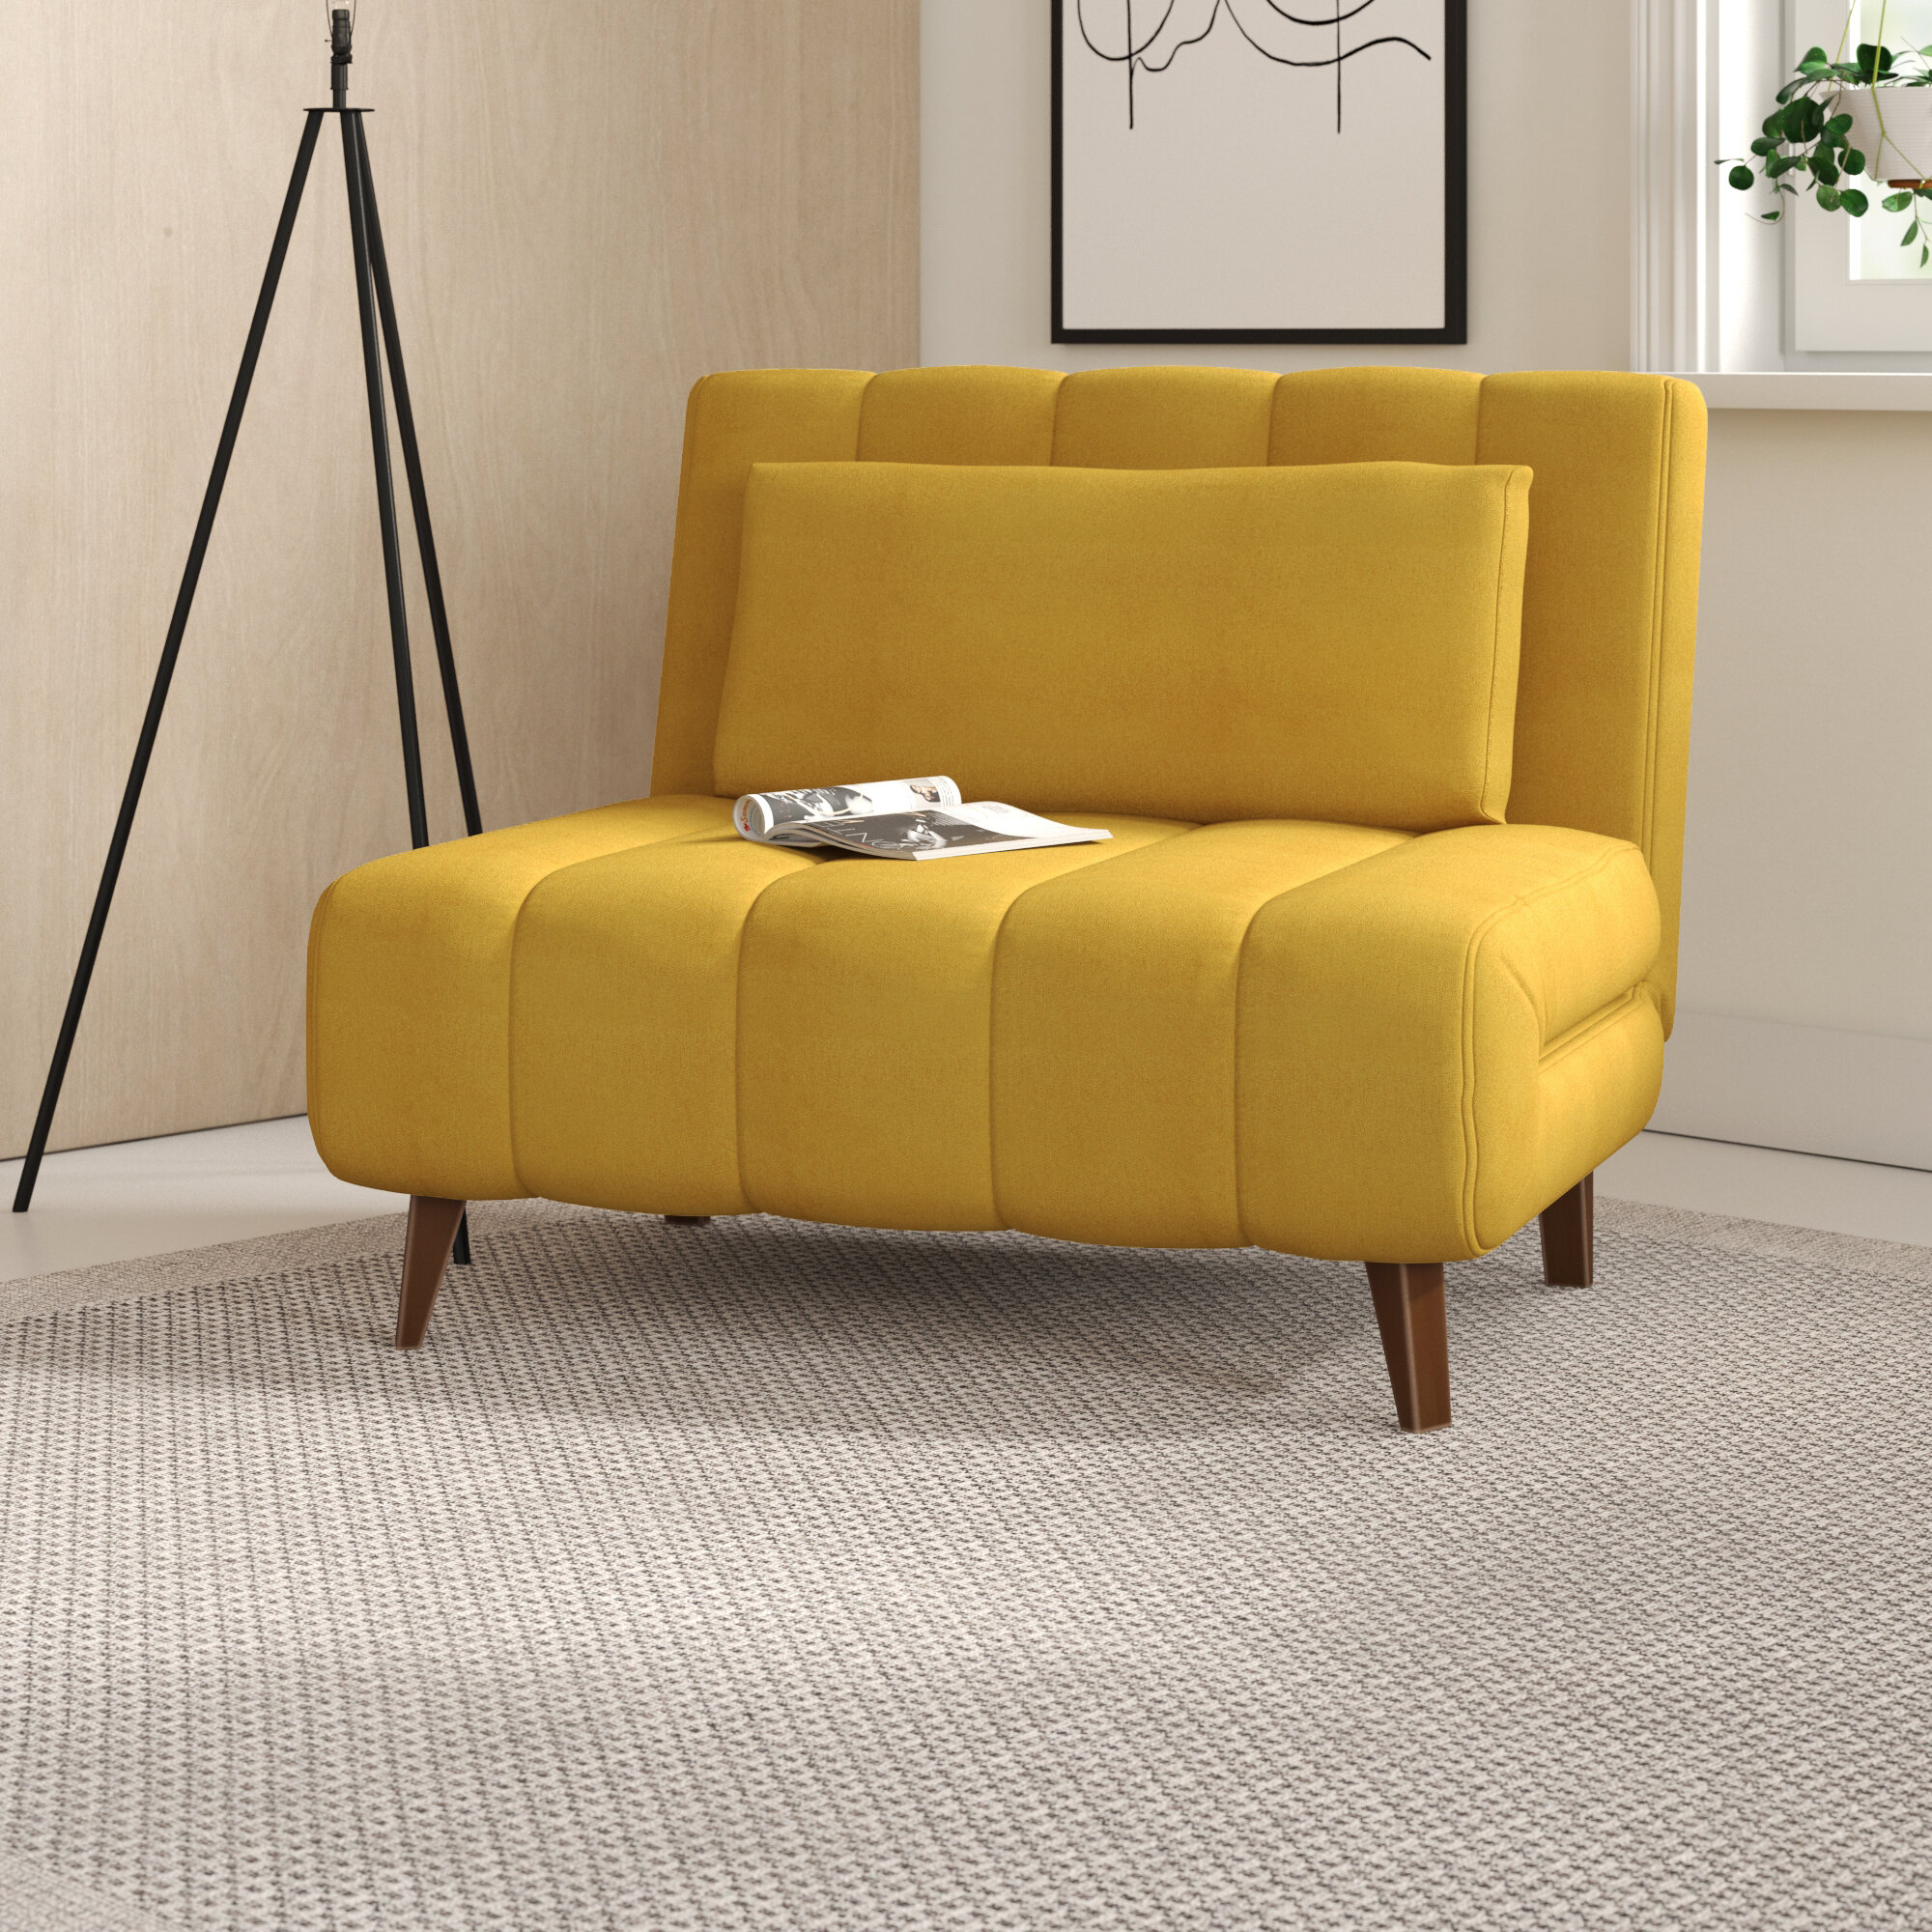 Accent Chairs  Up to 5% Off Through 5/5  Wayfair